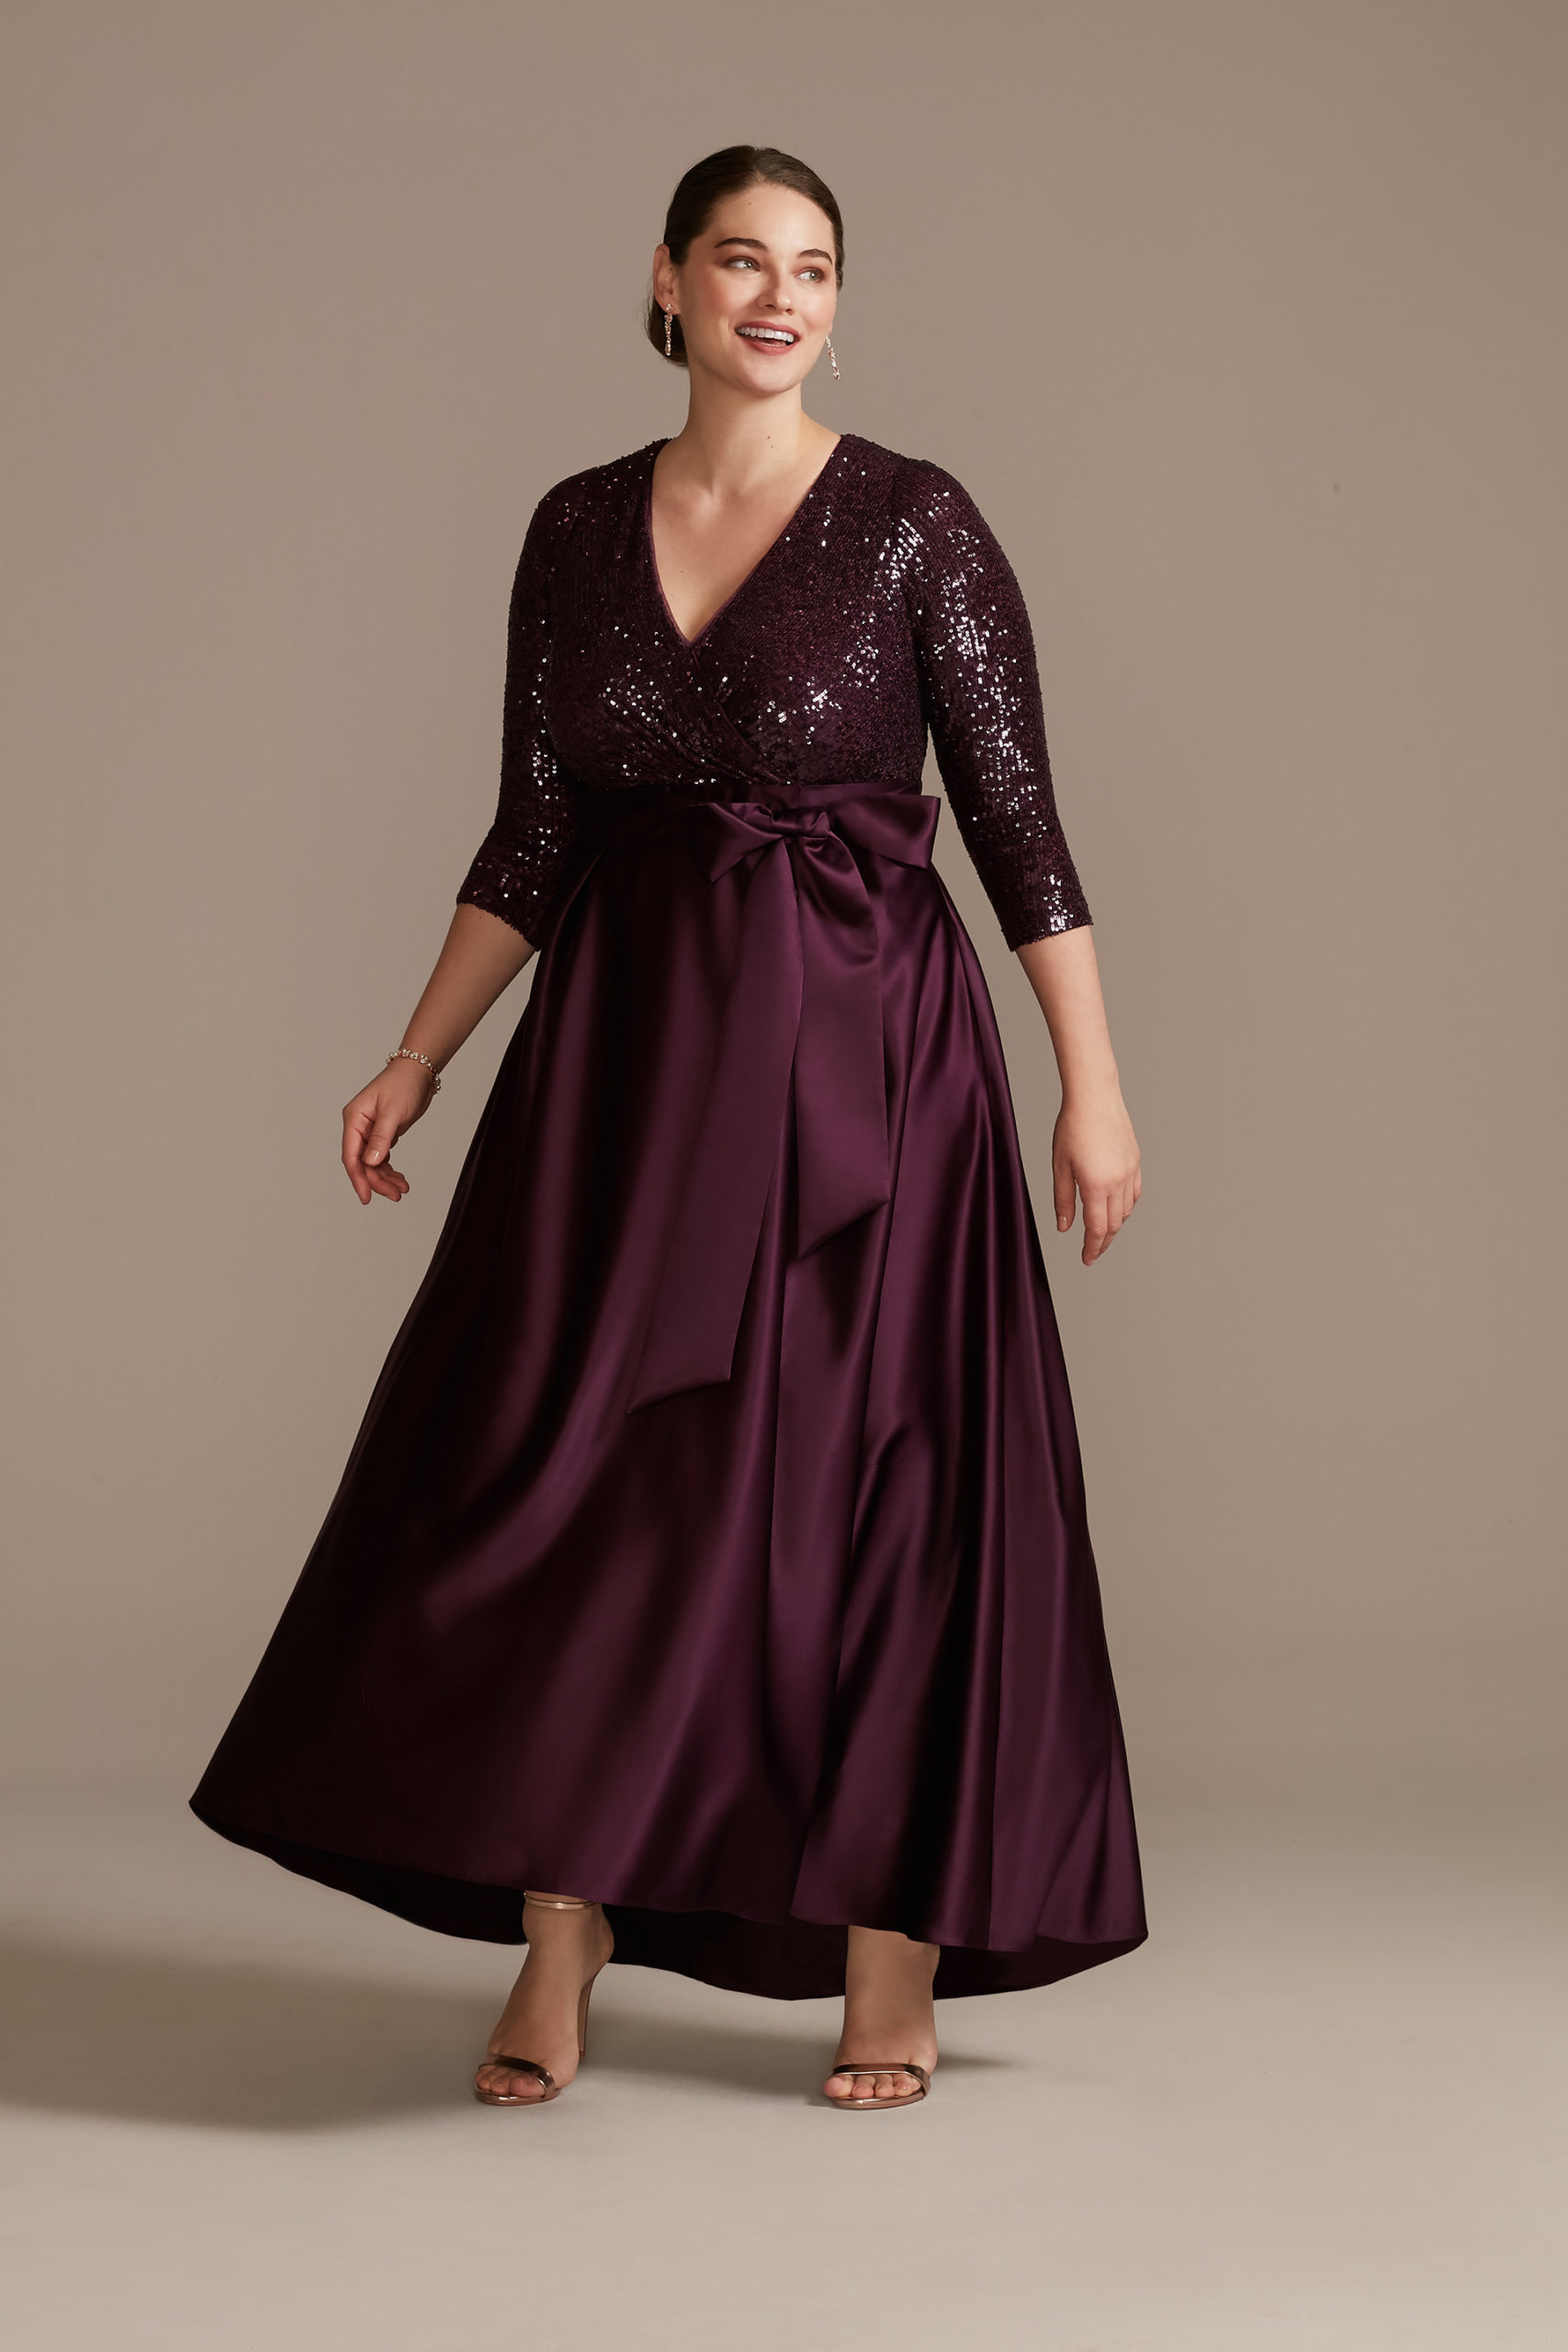 model wearing plum colored mother of the bride sequin and satin ball gown